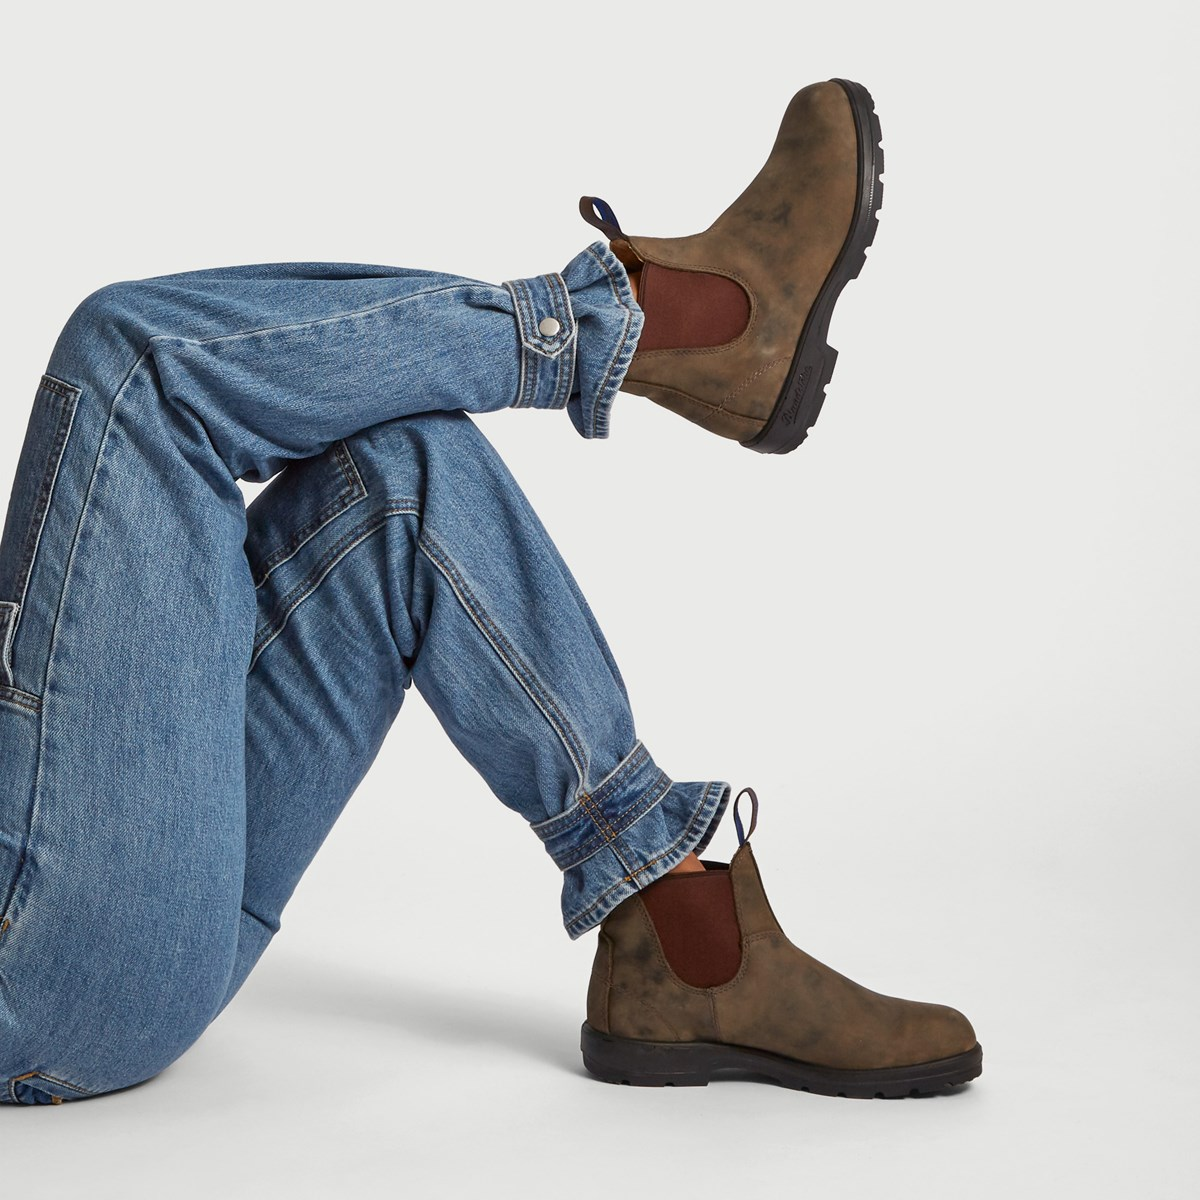 ad15778568d0 585 Leather Lined Chelsea Boots in Brown. Previous. default view · ALT1 ·  ALT2 ...